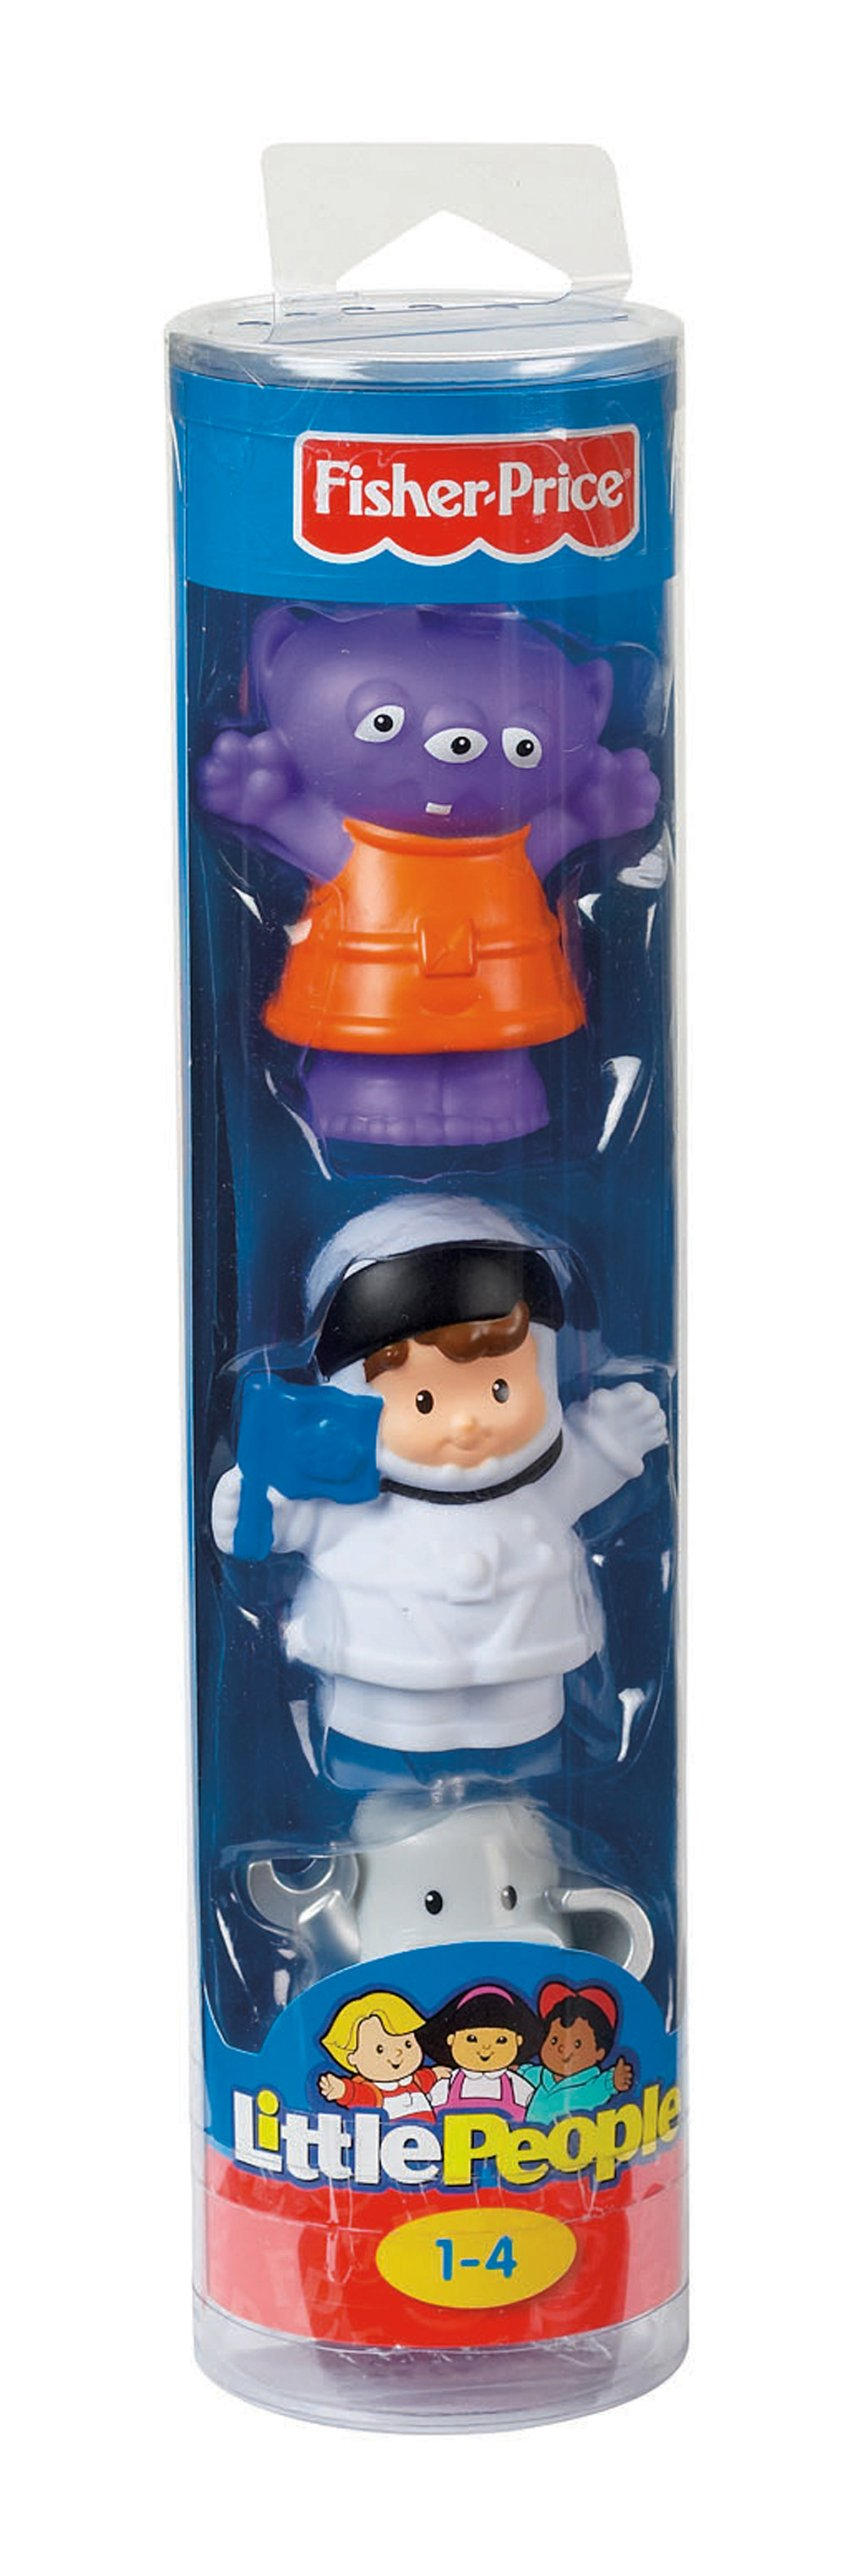 Fisher-Price/ /Little People Figures Tube Space